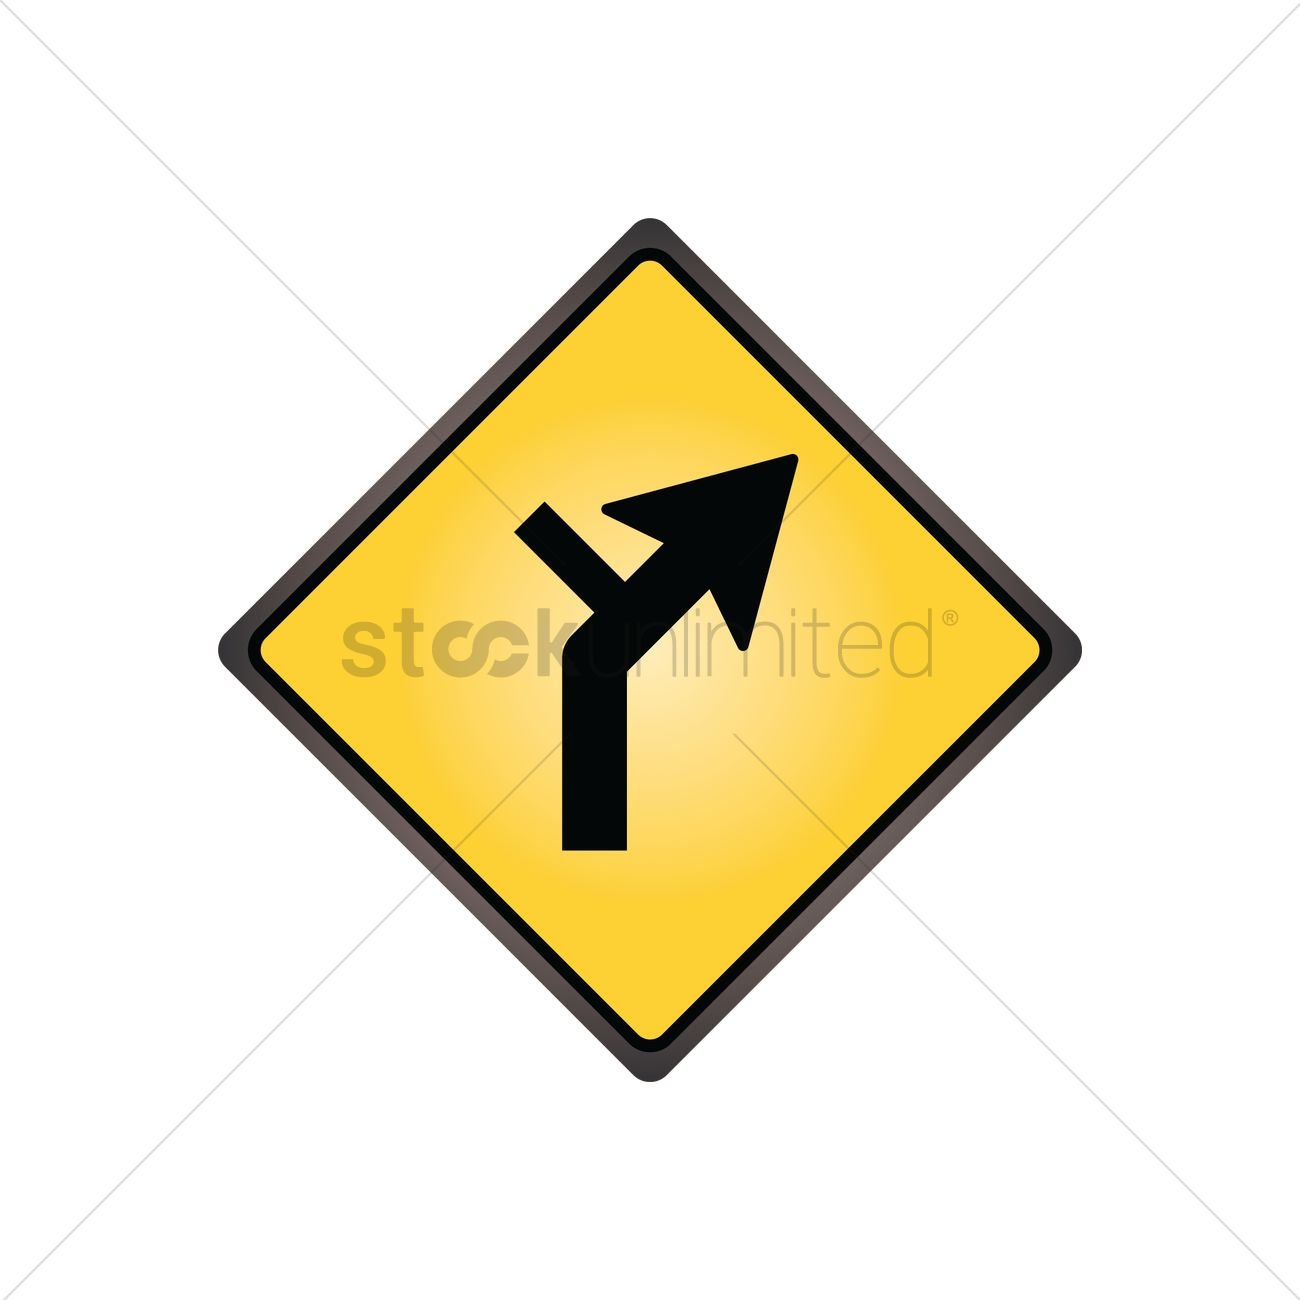 Horizontal 2 5 dimensional highway road sign clipart clipart.